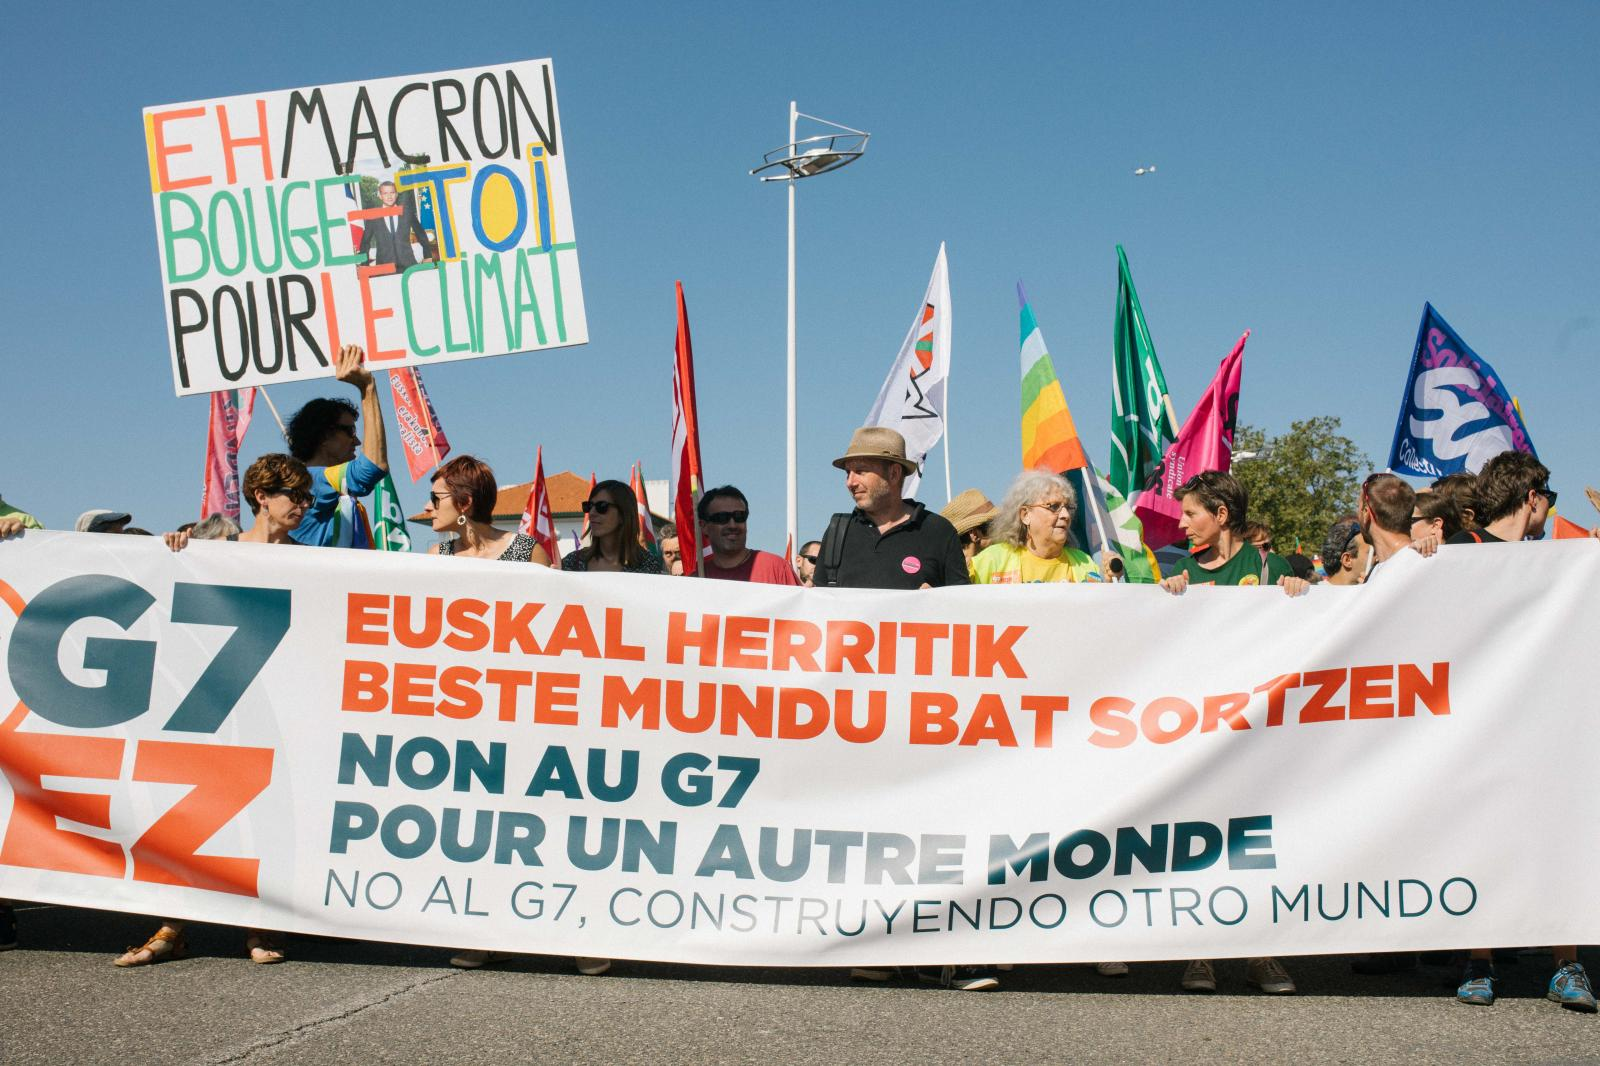 2019-08-24 - Mass demonstration in Hendaye opposing the politics of the G7.